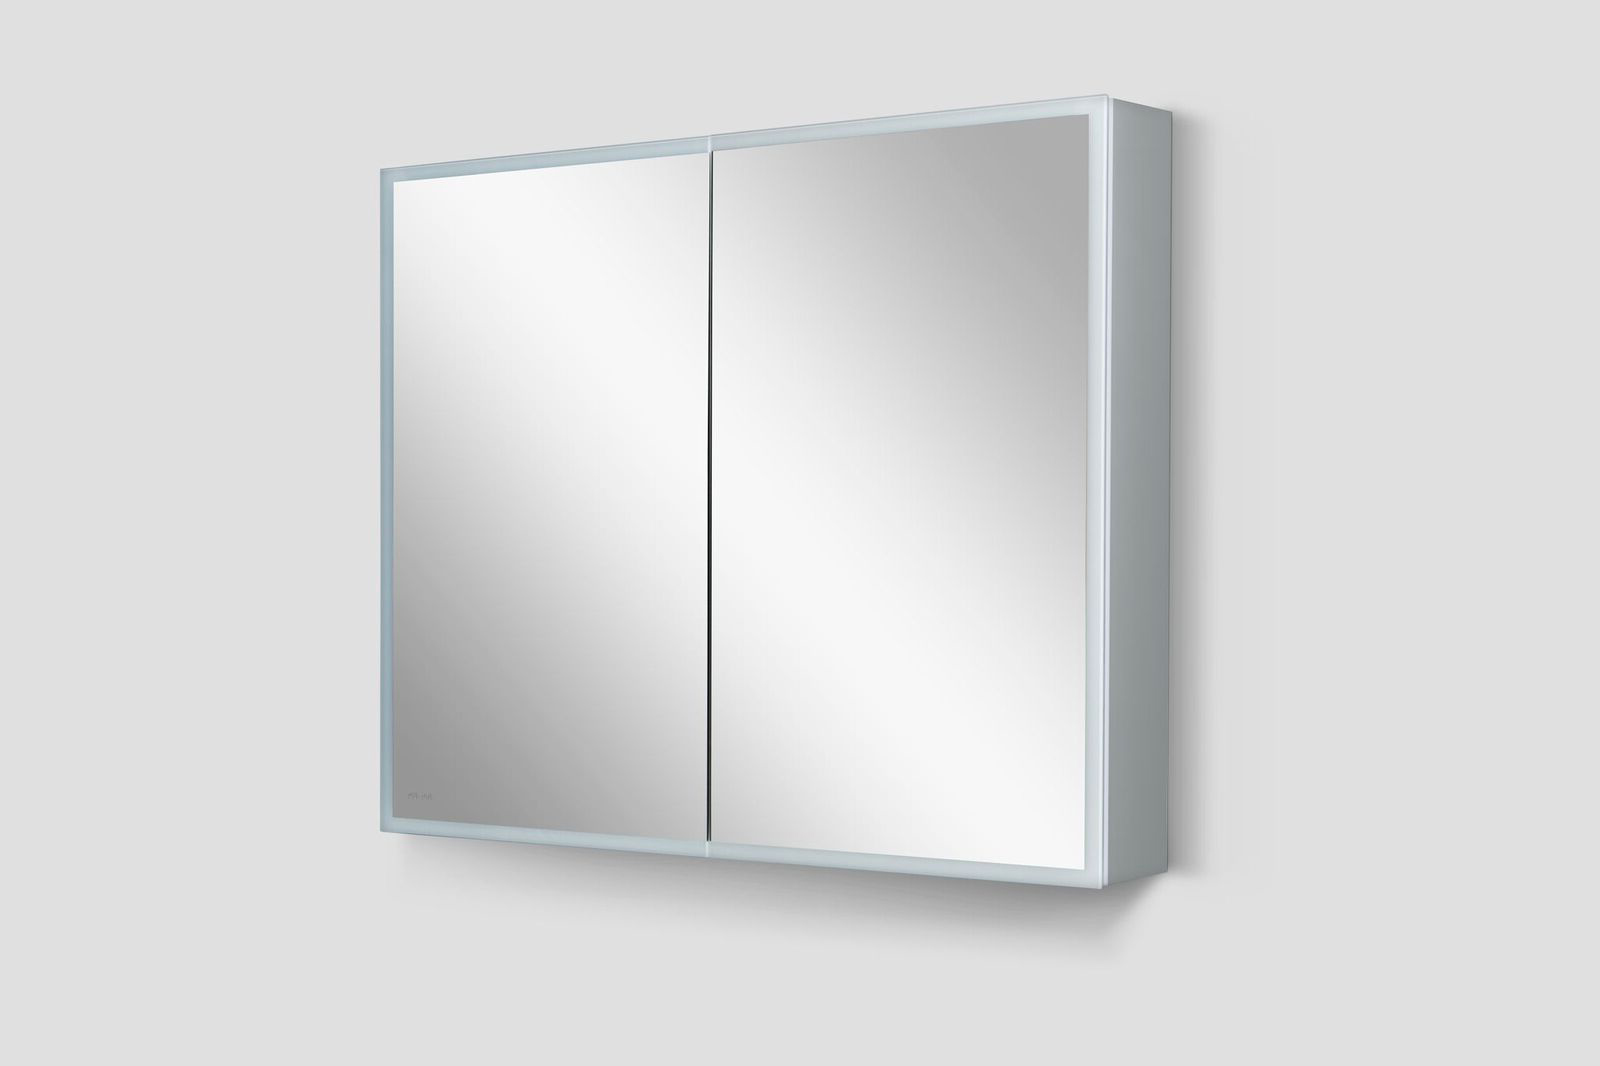 M70AMCX1002 Mirror cabinet with lighting, 100 cm